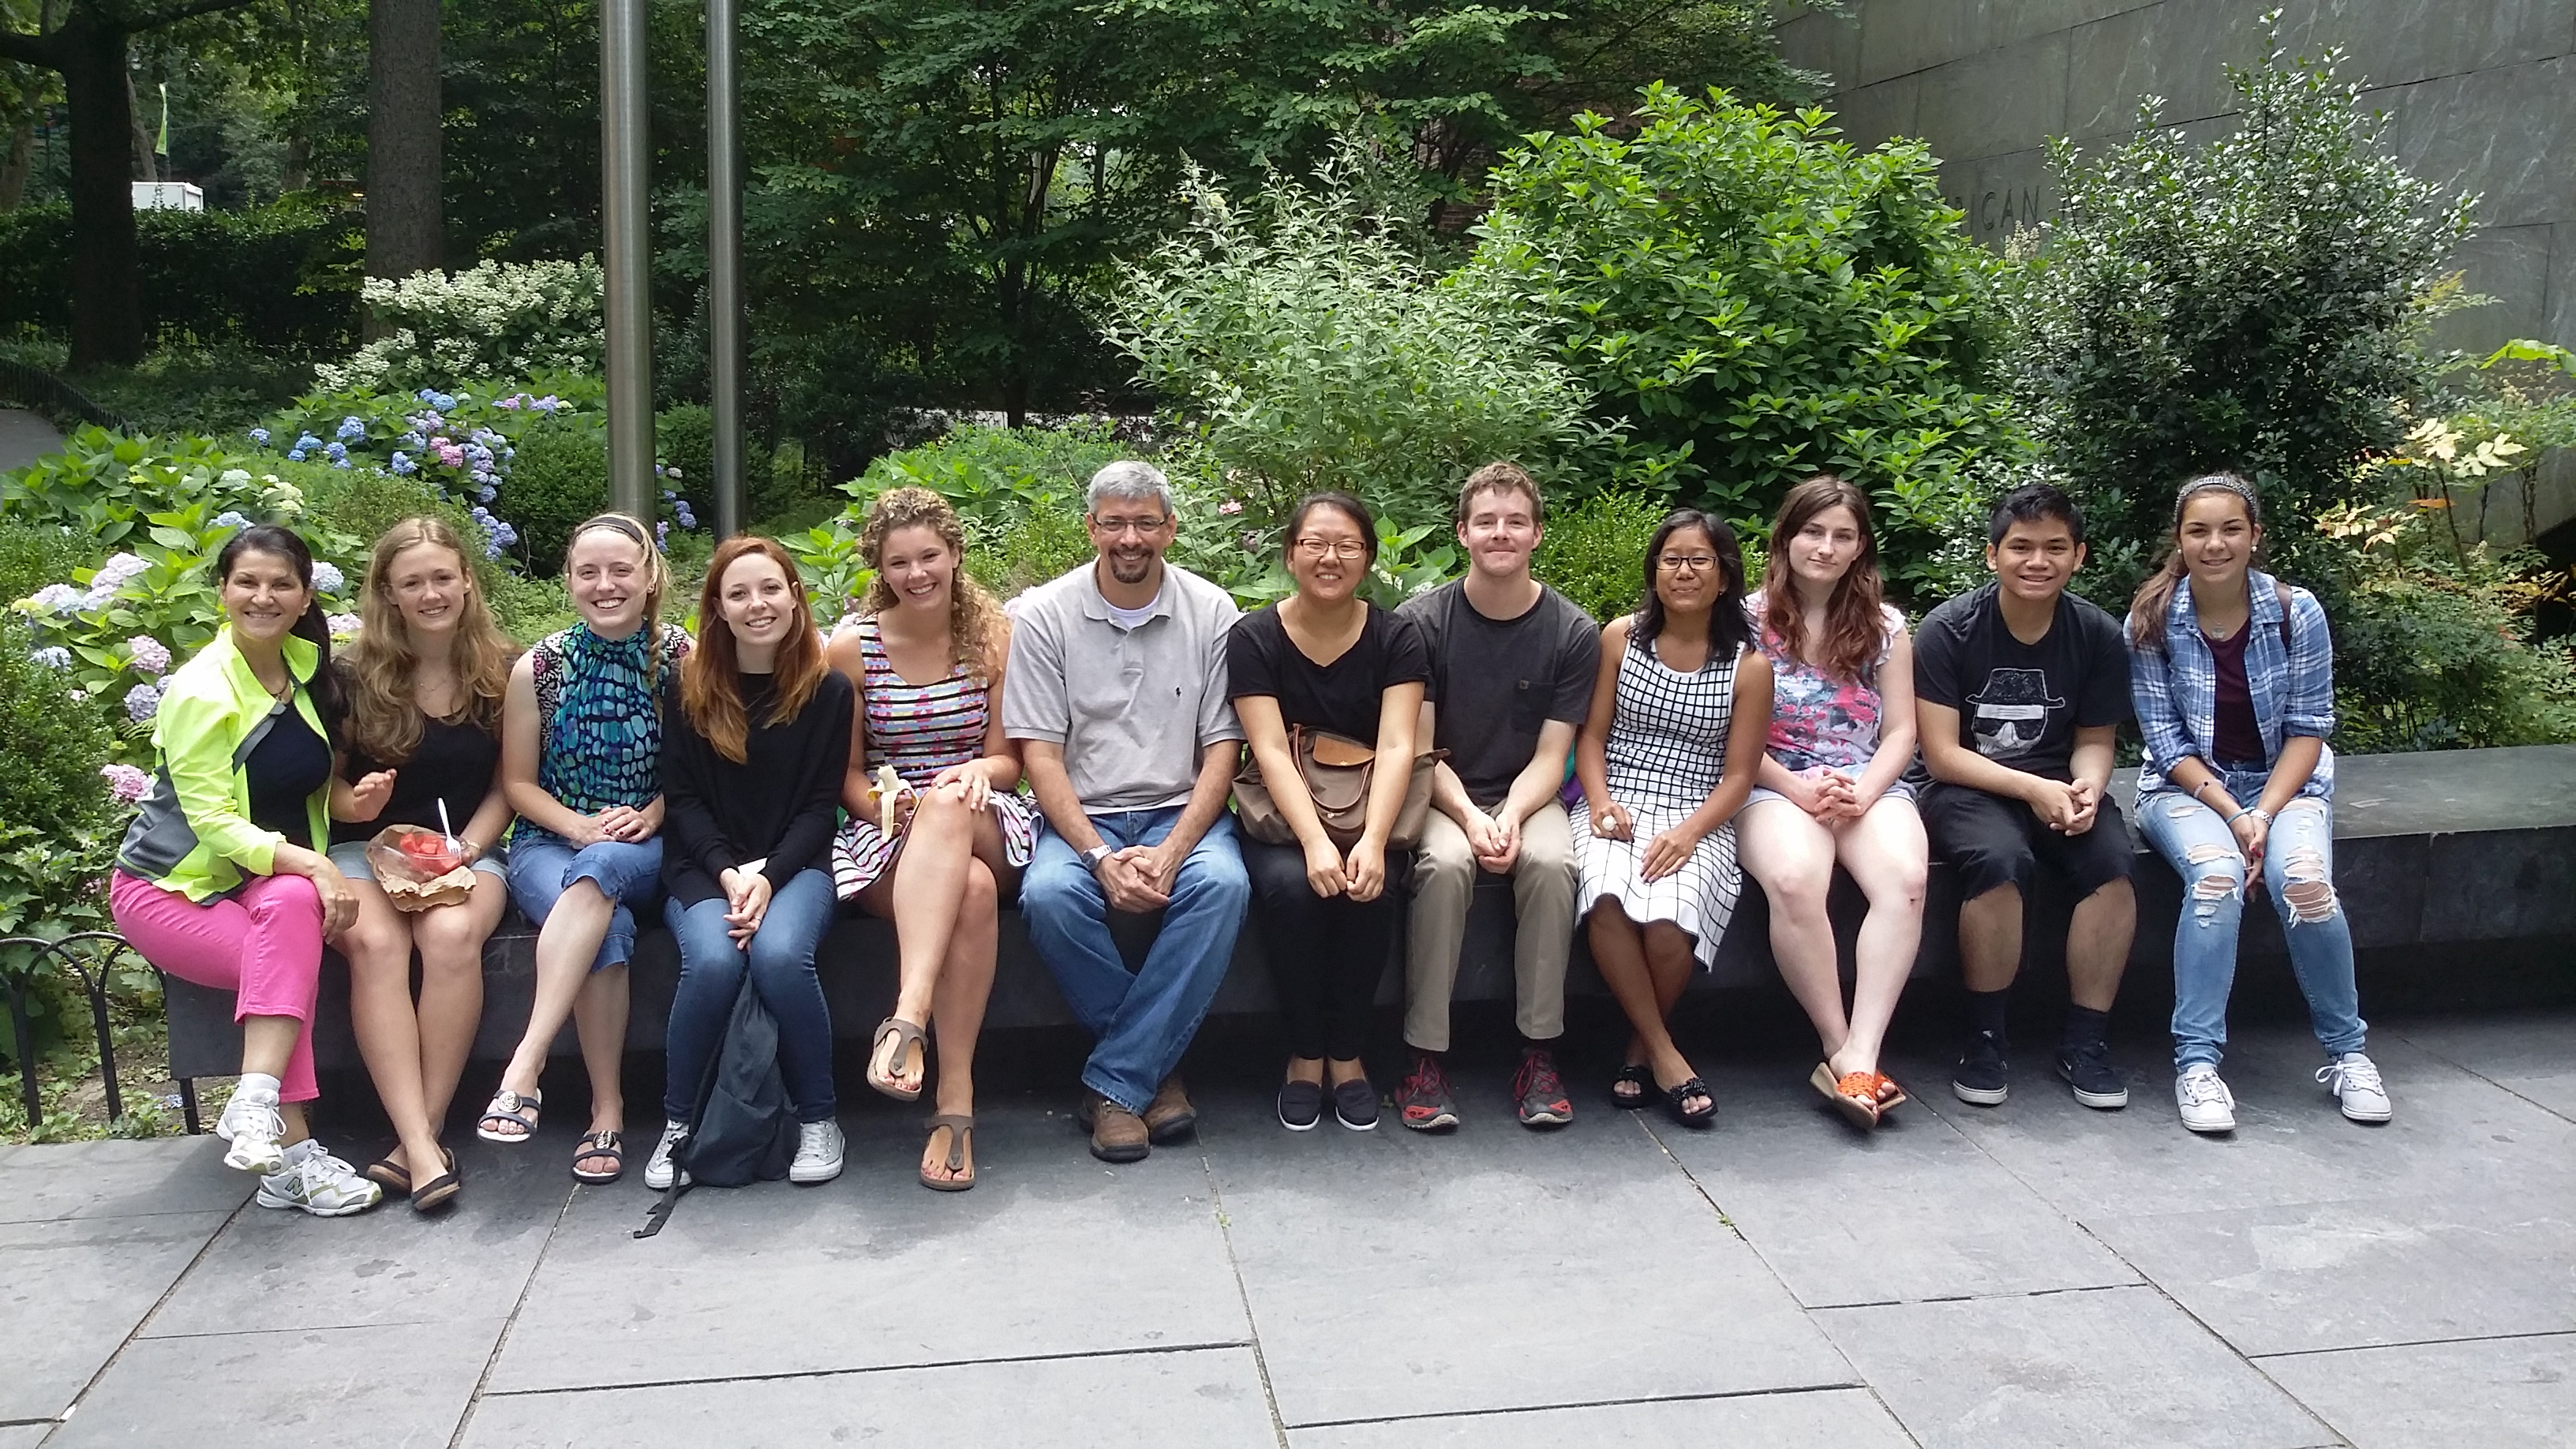 Summer school students enjoy the lovely weather outside of the American Museum of Natural History during their second field trip.